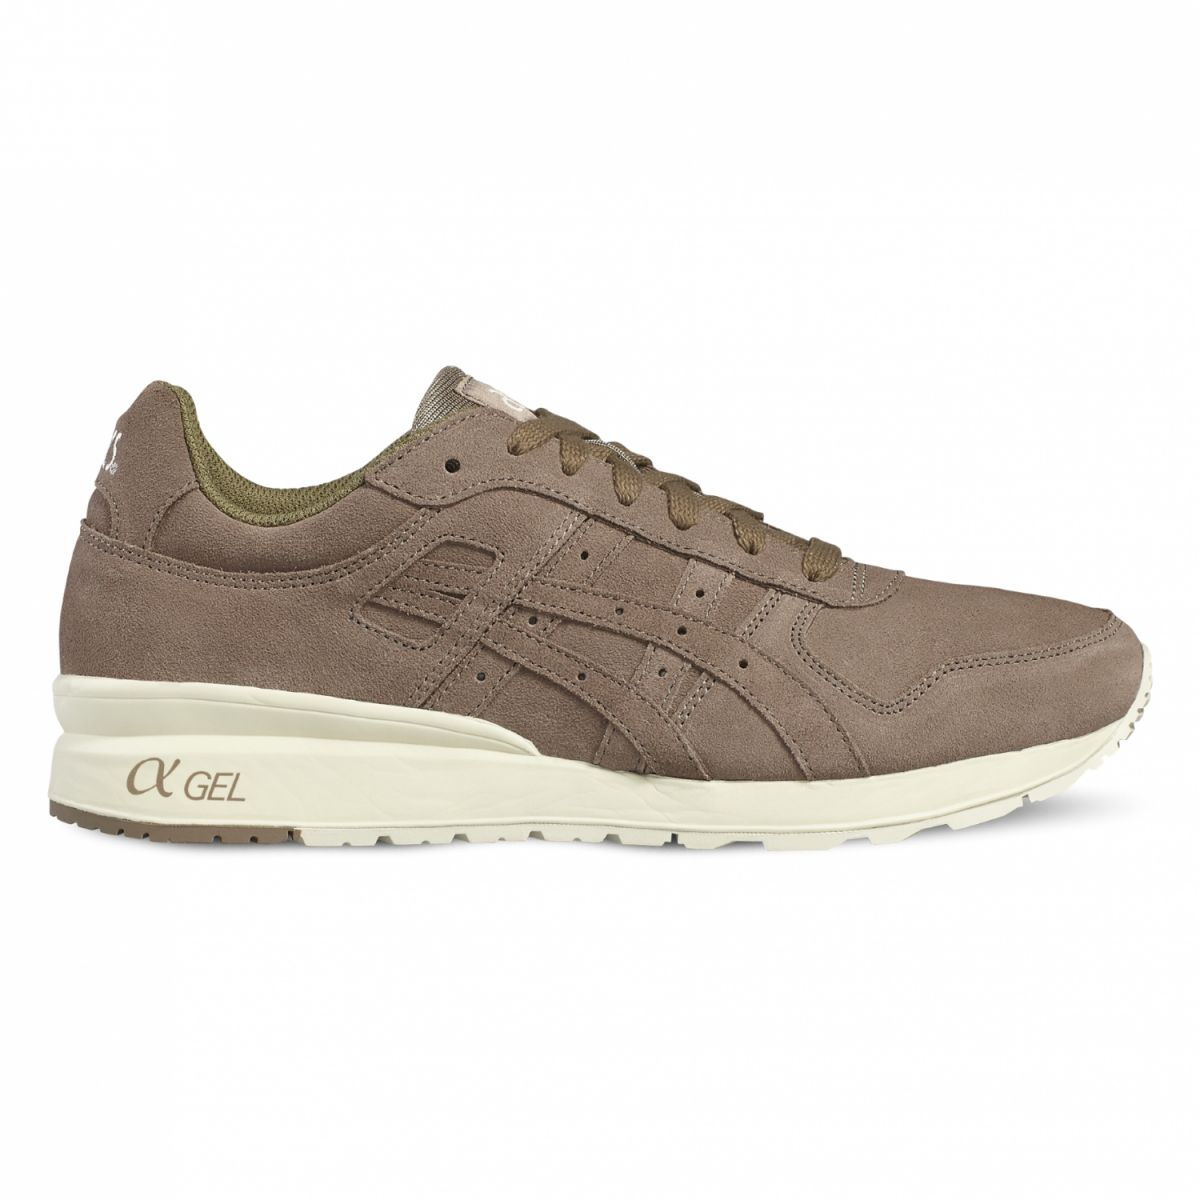 asics tiger gt ii sneaker herren schuhe beige h7a2l 1212 sport klingenmaier. Black Bedroom Furniture Sets. Home Design Ideas